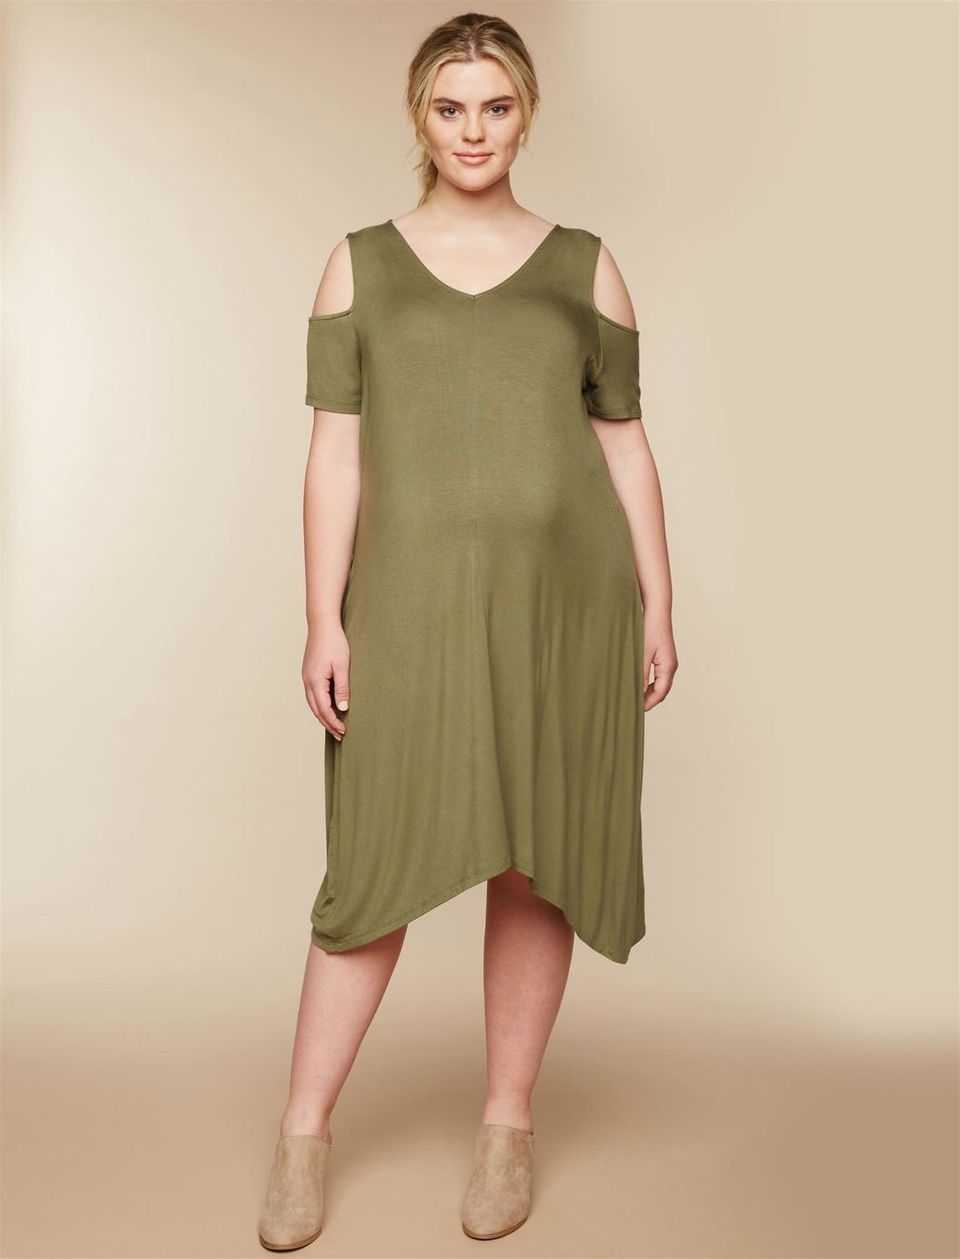 a5b1e02fbc1ca Where To Buy Plus-Size Maternity Clothing That s Actually Cute ...